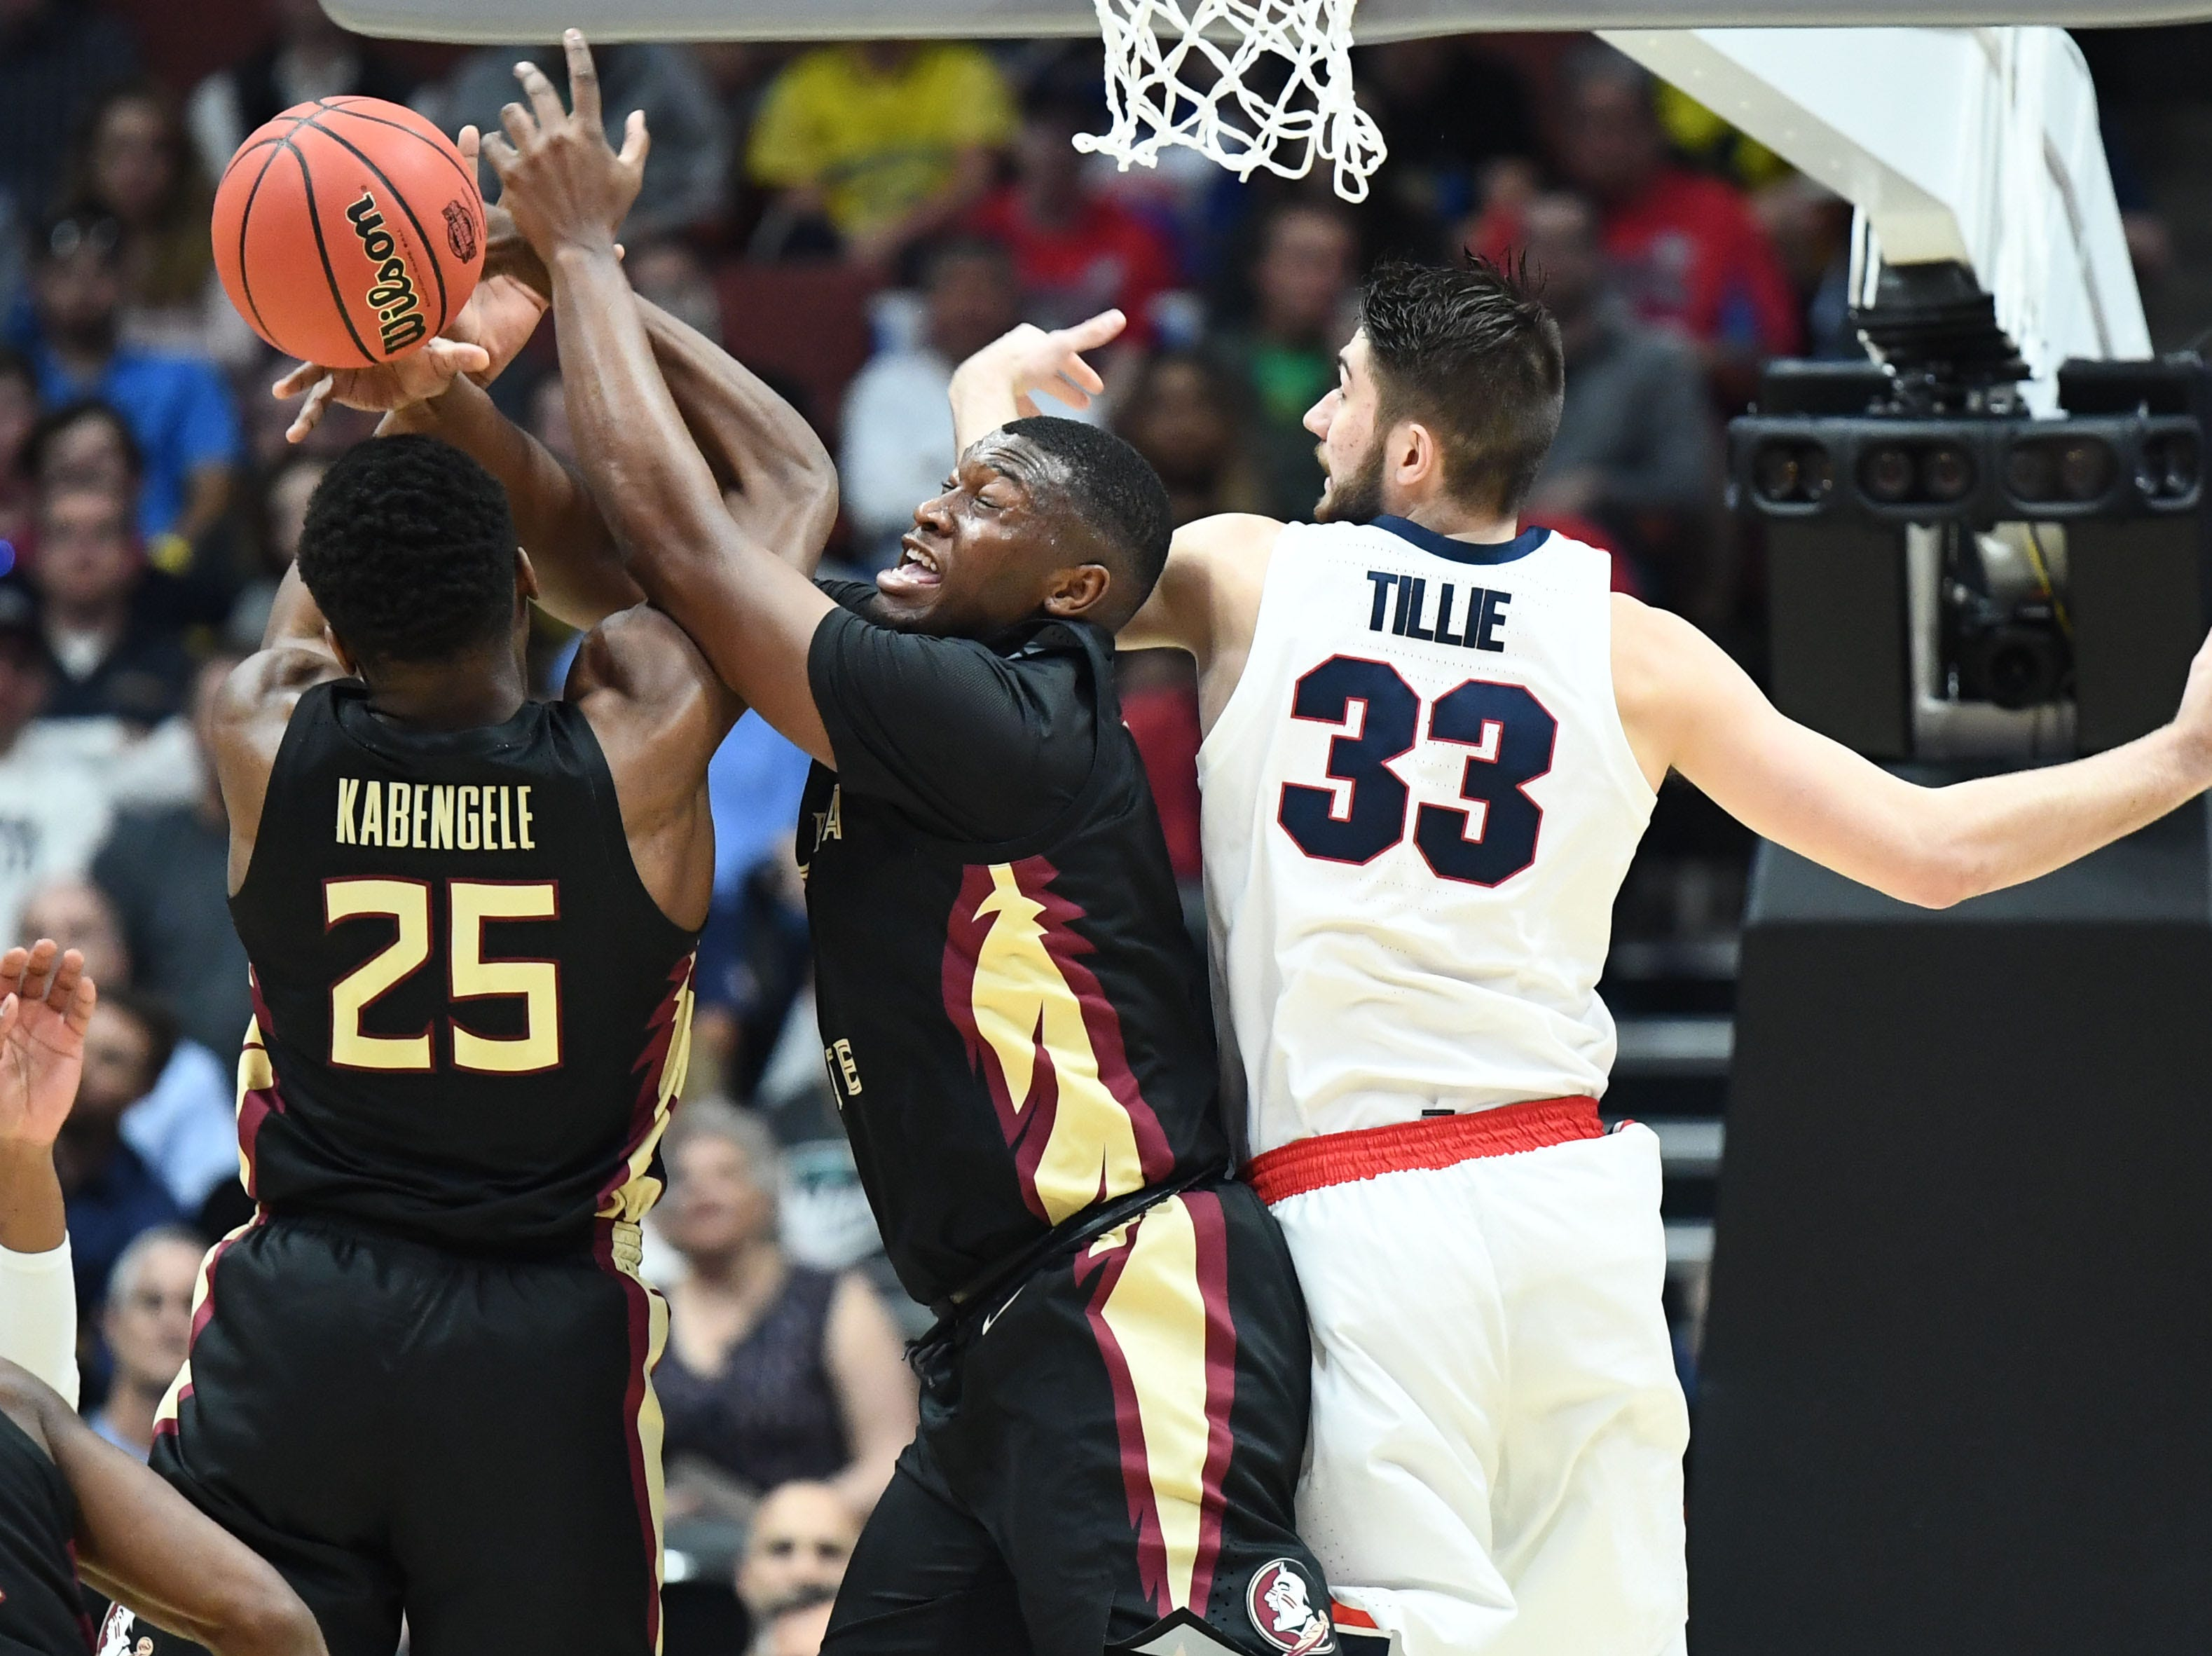 March 28, 2019; Anaheim, CA, USA; Florida State Seminoles forward Mfiondu Kabengele (25) plays for the rebound against Gonzaga Bulldogs forward Killian Tillie (33) during the first half in the semifinals of the west regional of the 2019 NCAA Tournament at Honda Center. Mandatory Credit: Robert Hanashiro-USA TODAY Sports